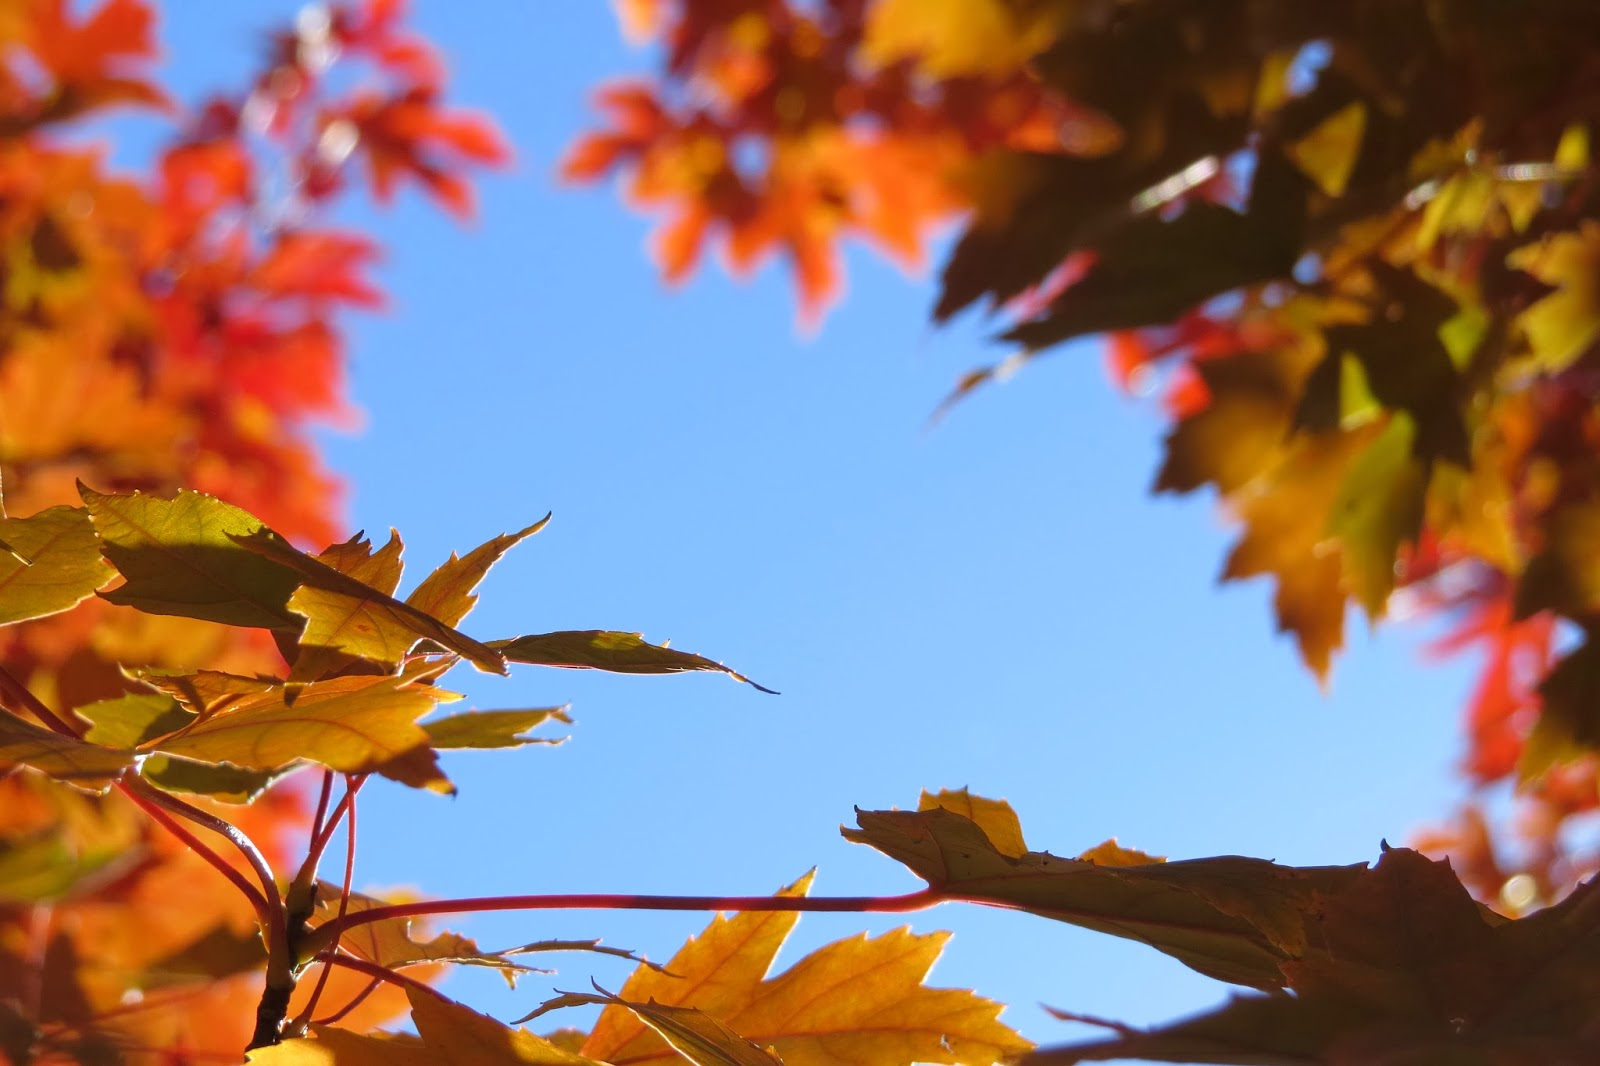 Finding beauty in every day, fall leaves in Boise